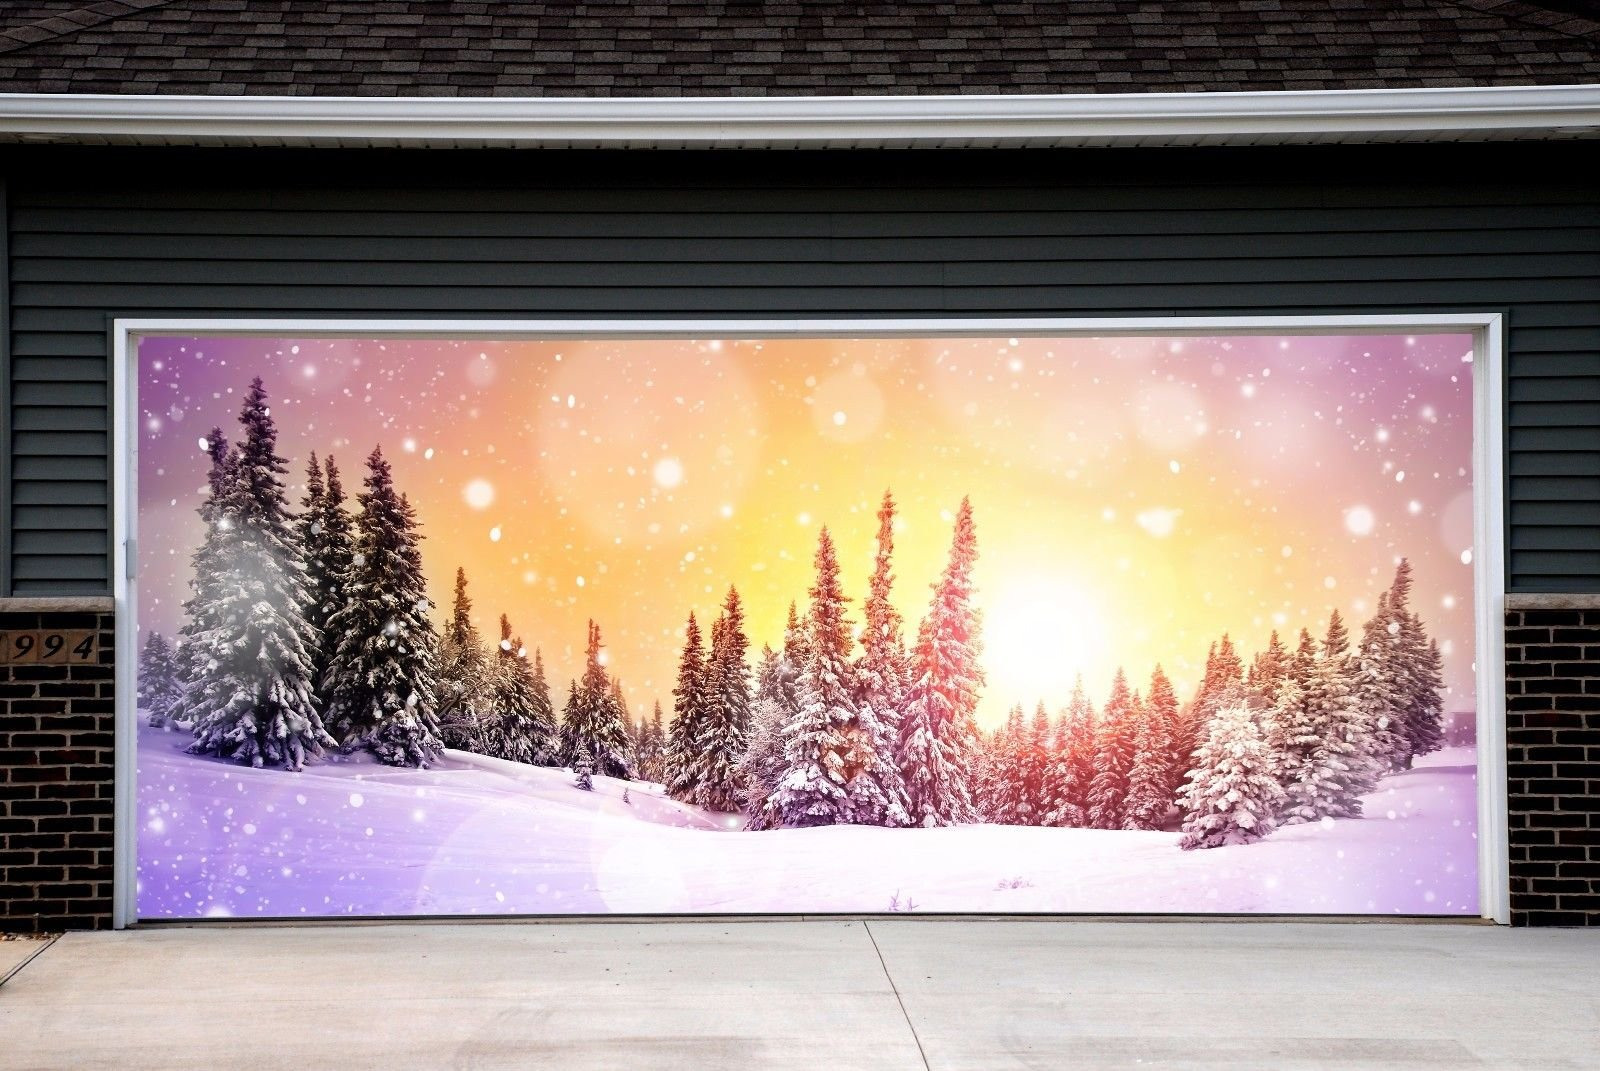 Winter Holiday Christmas Garage Door Covers Banners Outdoor Merry Christmas Decorations Billboard Full Color for 2 Car Garage Door House Art Murals size 82x188 inches DAV49 by WallTattooHome